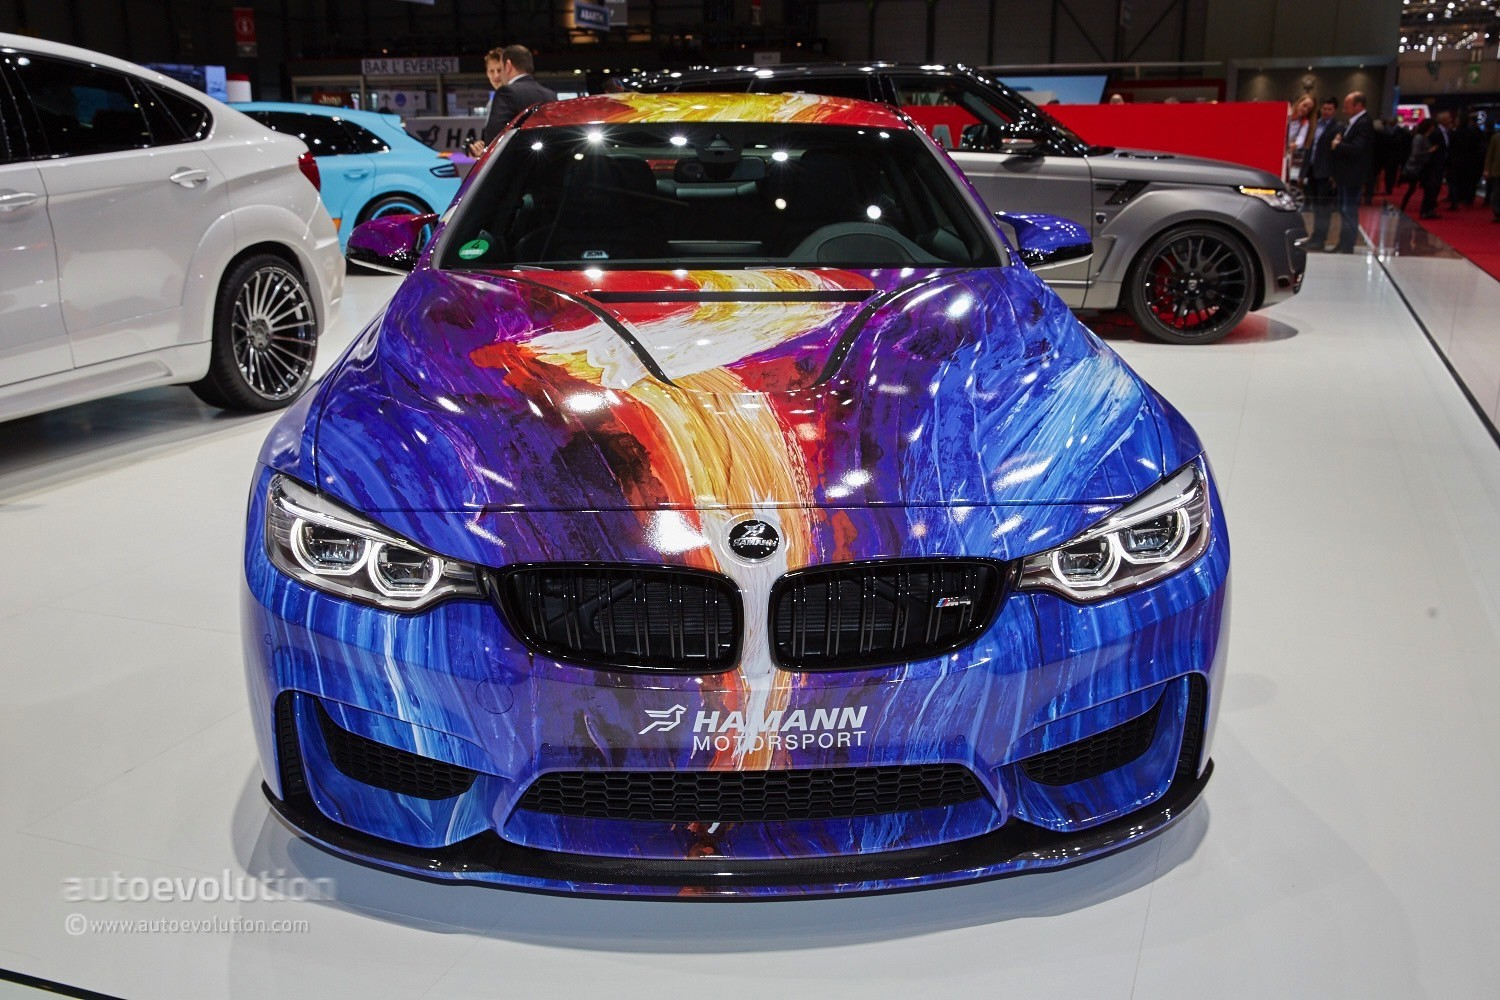 Hamann Brought Out A Color Explosion Atop A Bmw M4 In